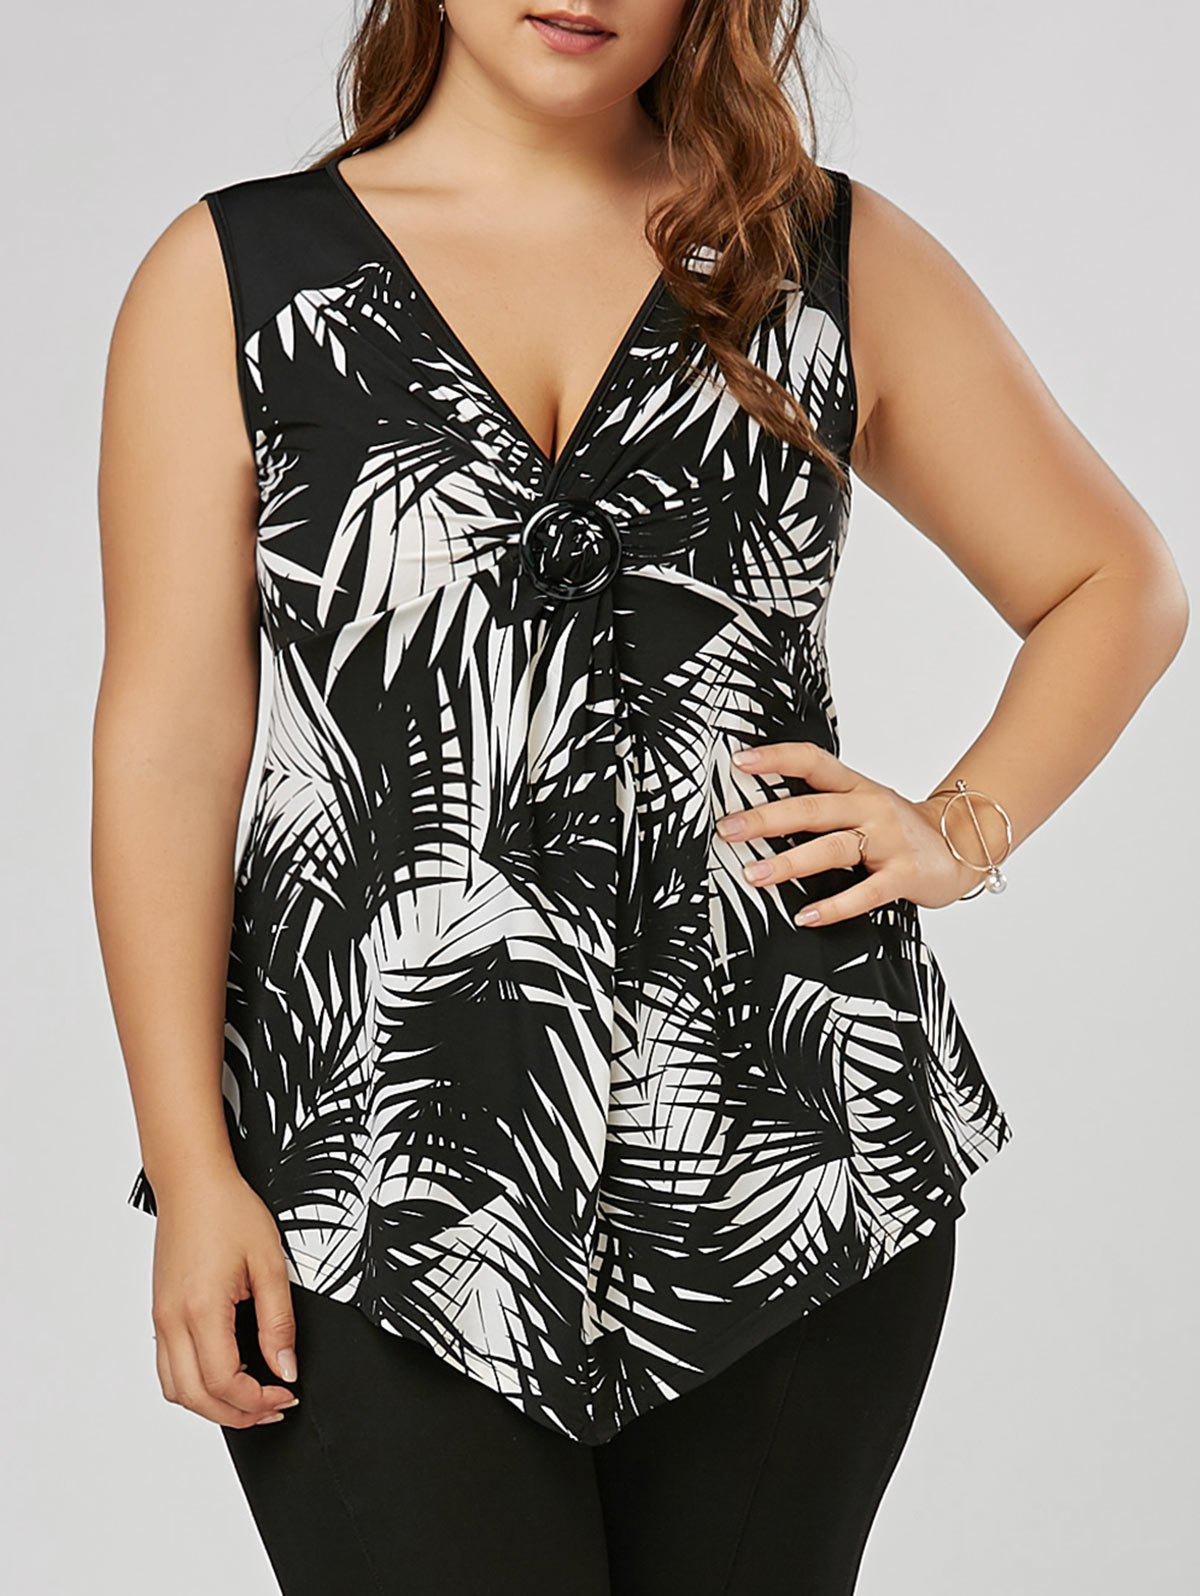 Plus Size Twist Front Slim Fitting Top - WHITE/BLACK 4XL